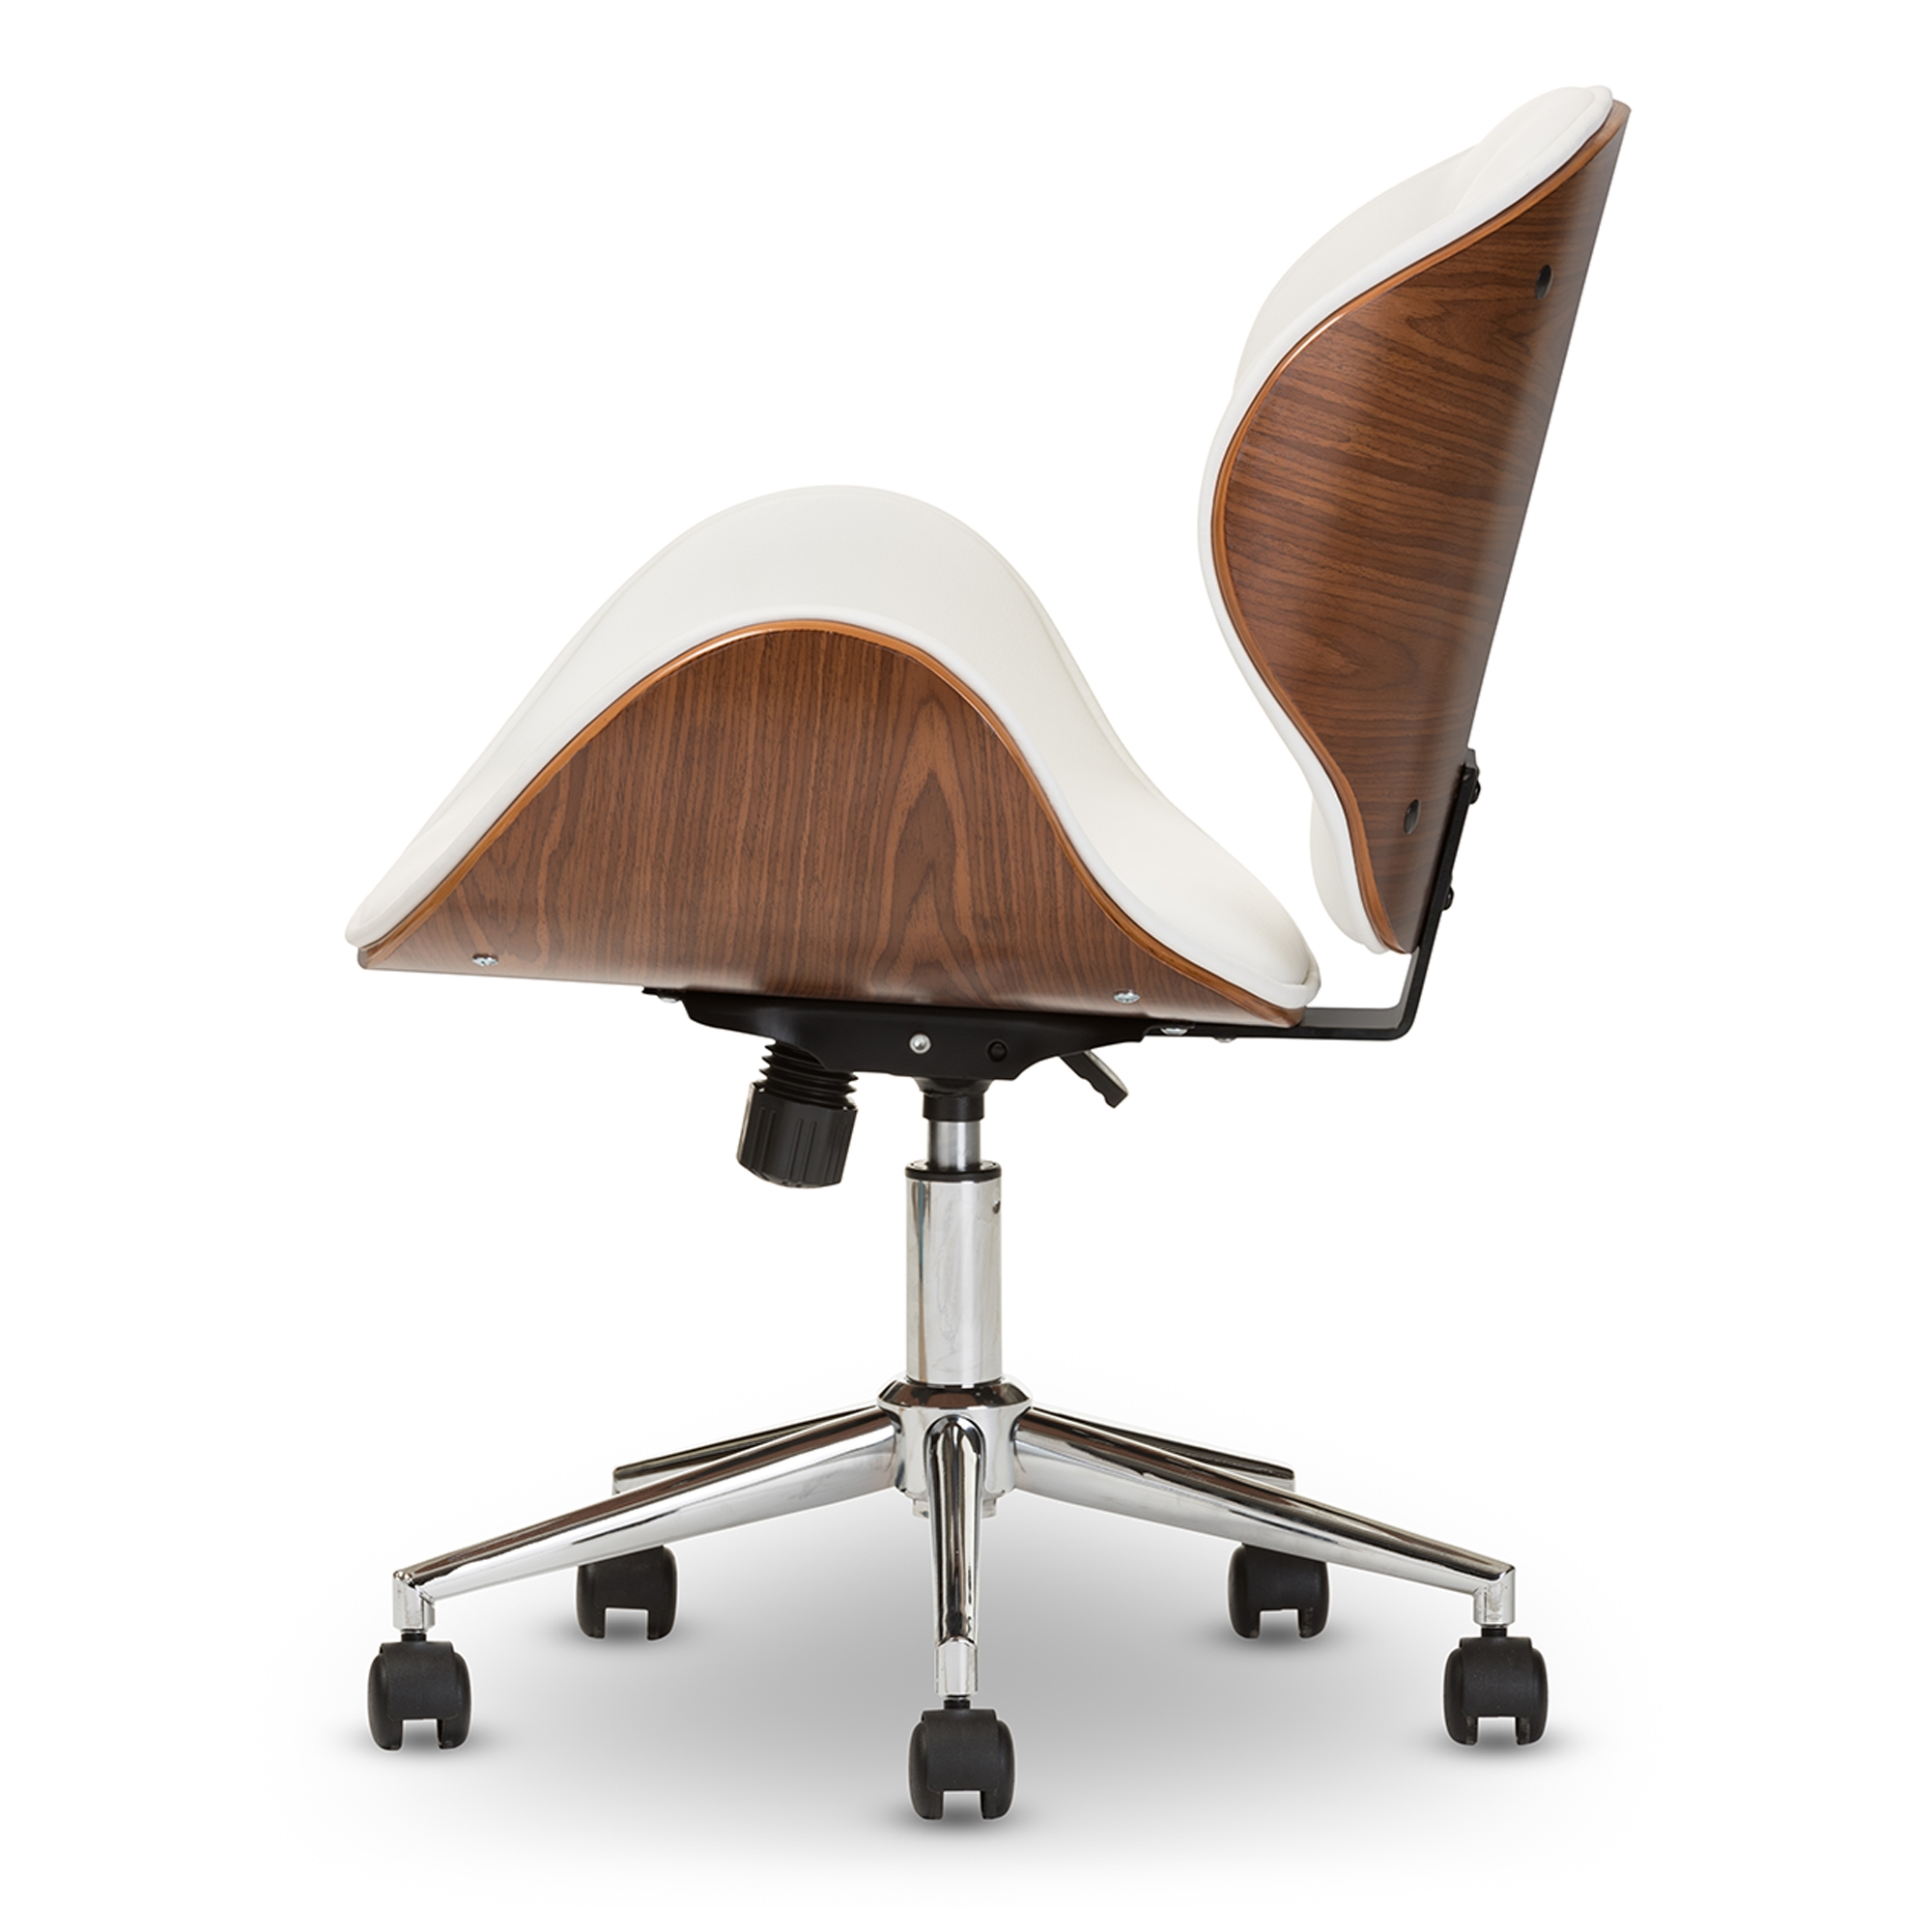 White walnut office furniture Modern Baxton Studio Bruce Modern And Contemporary White And Walnut Office Chair Iesdm2240 Interior Express Baxton Studio Bruce Modern And Contemporary White And Walnut Office